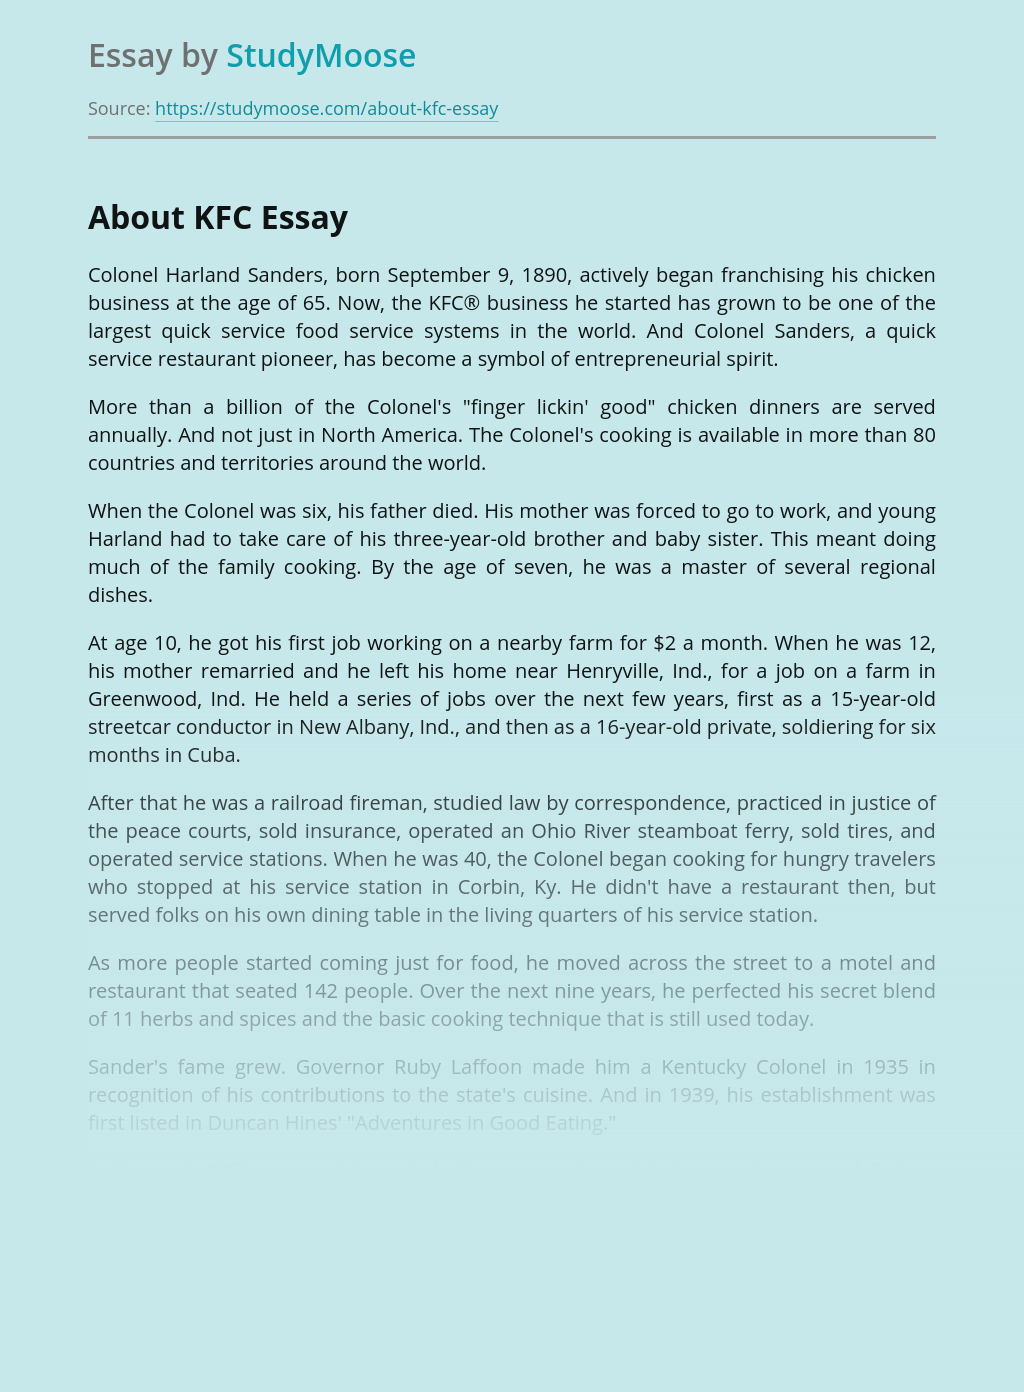 KFC and Its History of Success